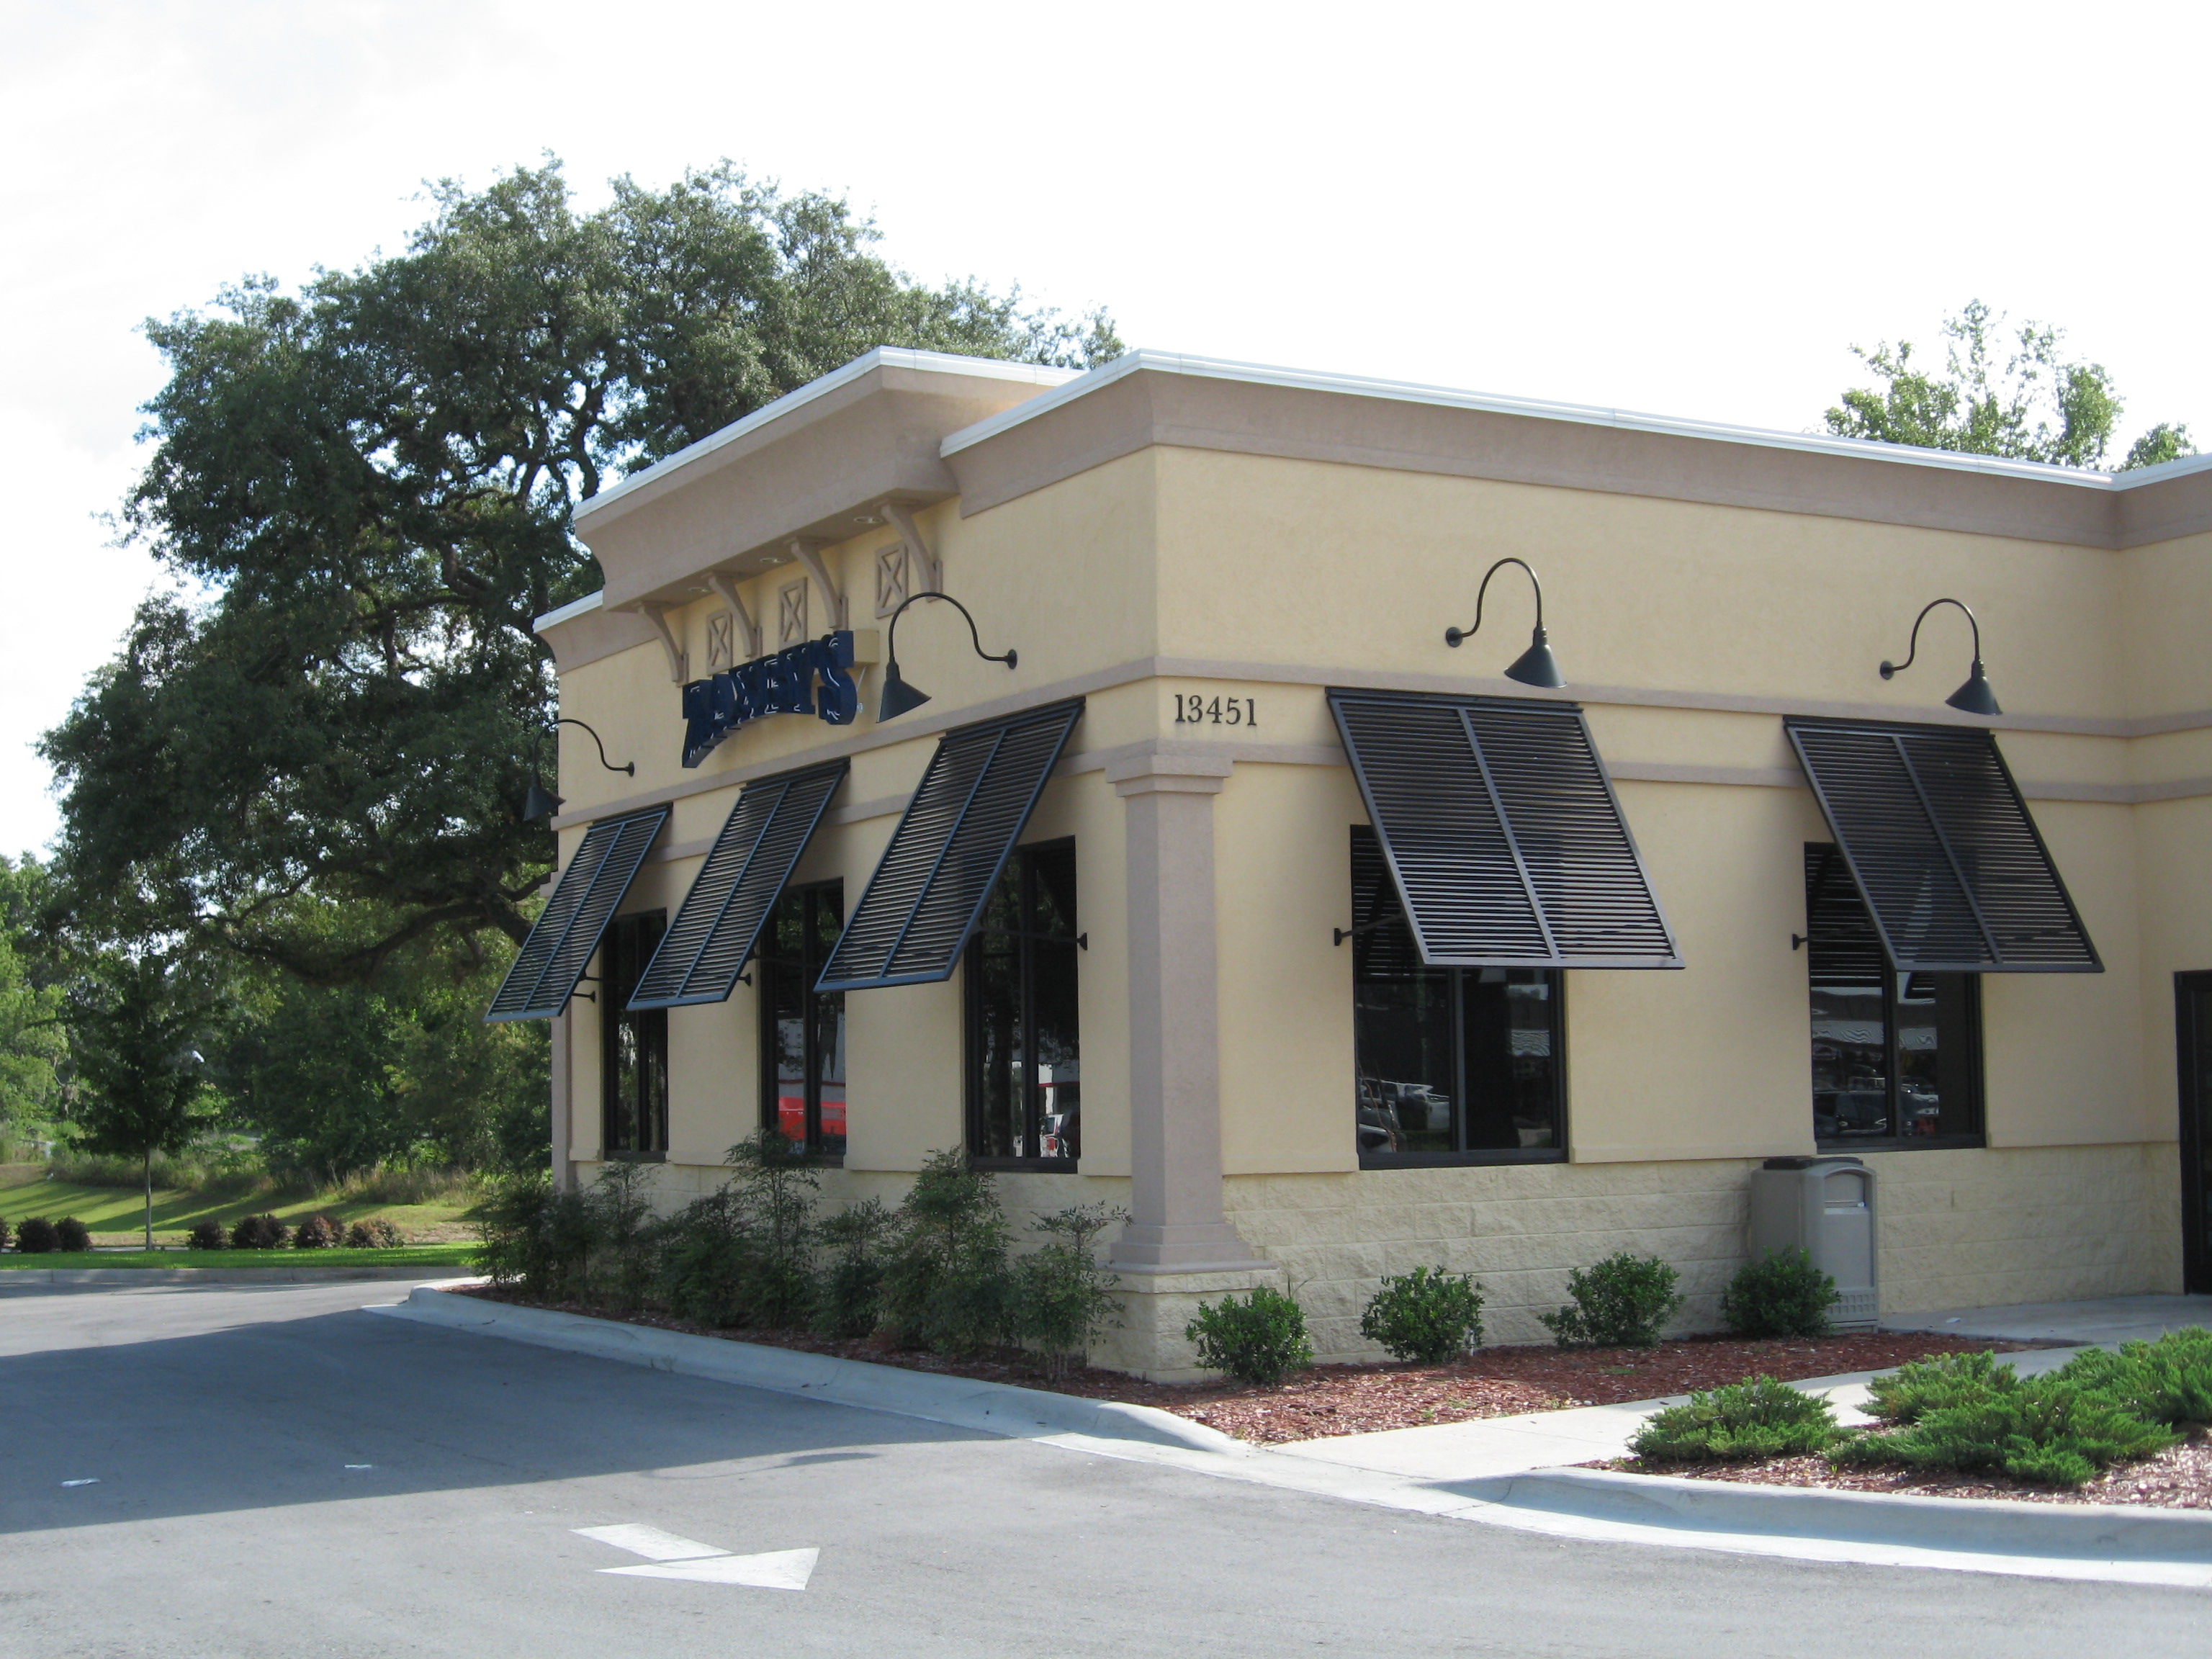 Zaxbys-photos-0031 - Palmetto Outdoor Spaces, LLC